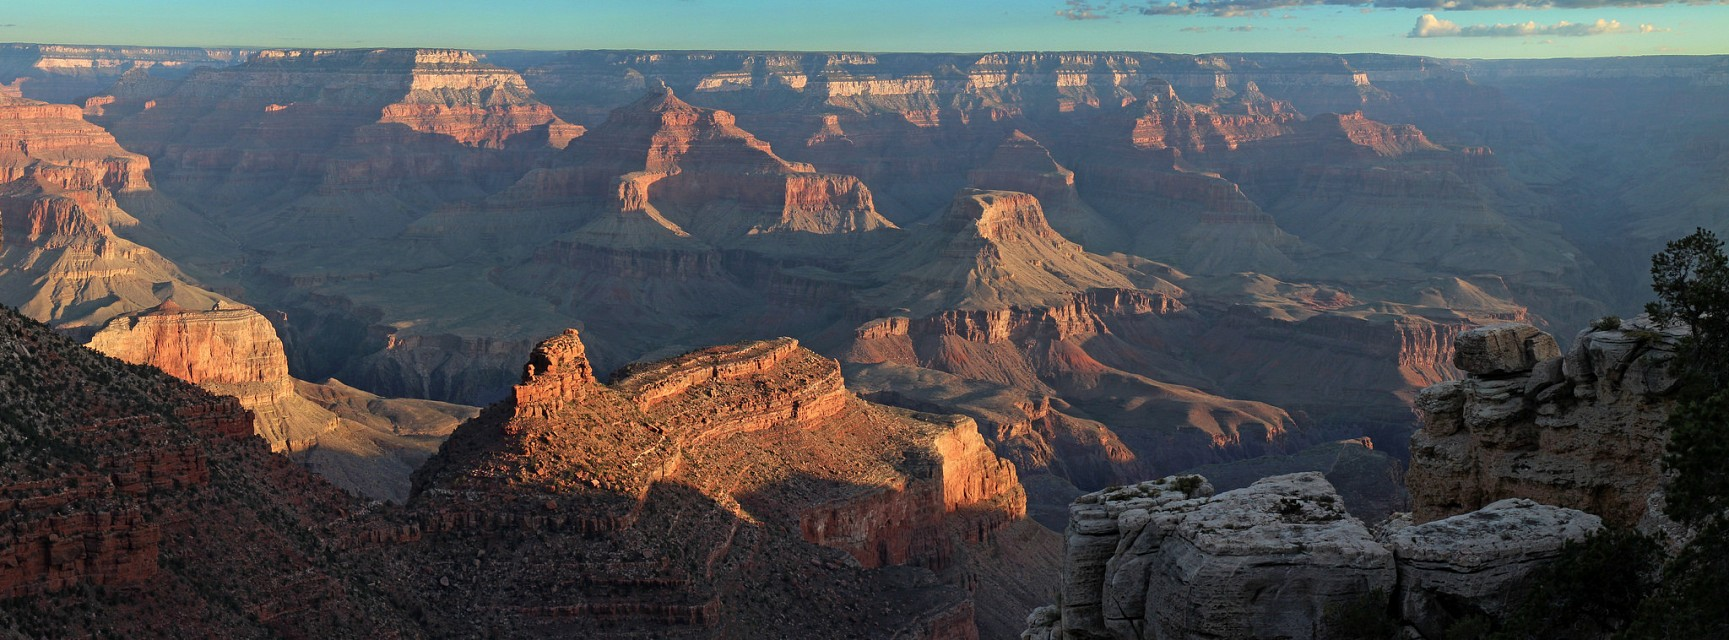 Grand Canyon National Park: Sunrise October 19, 2014 - Grand Canyon National Park